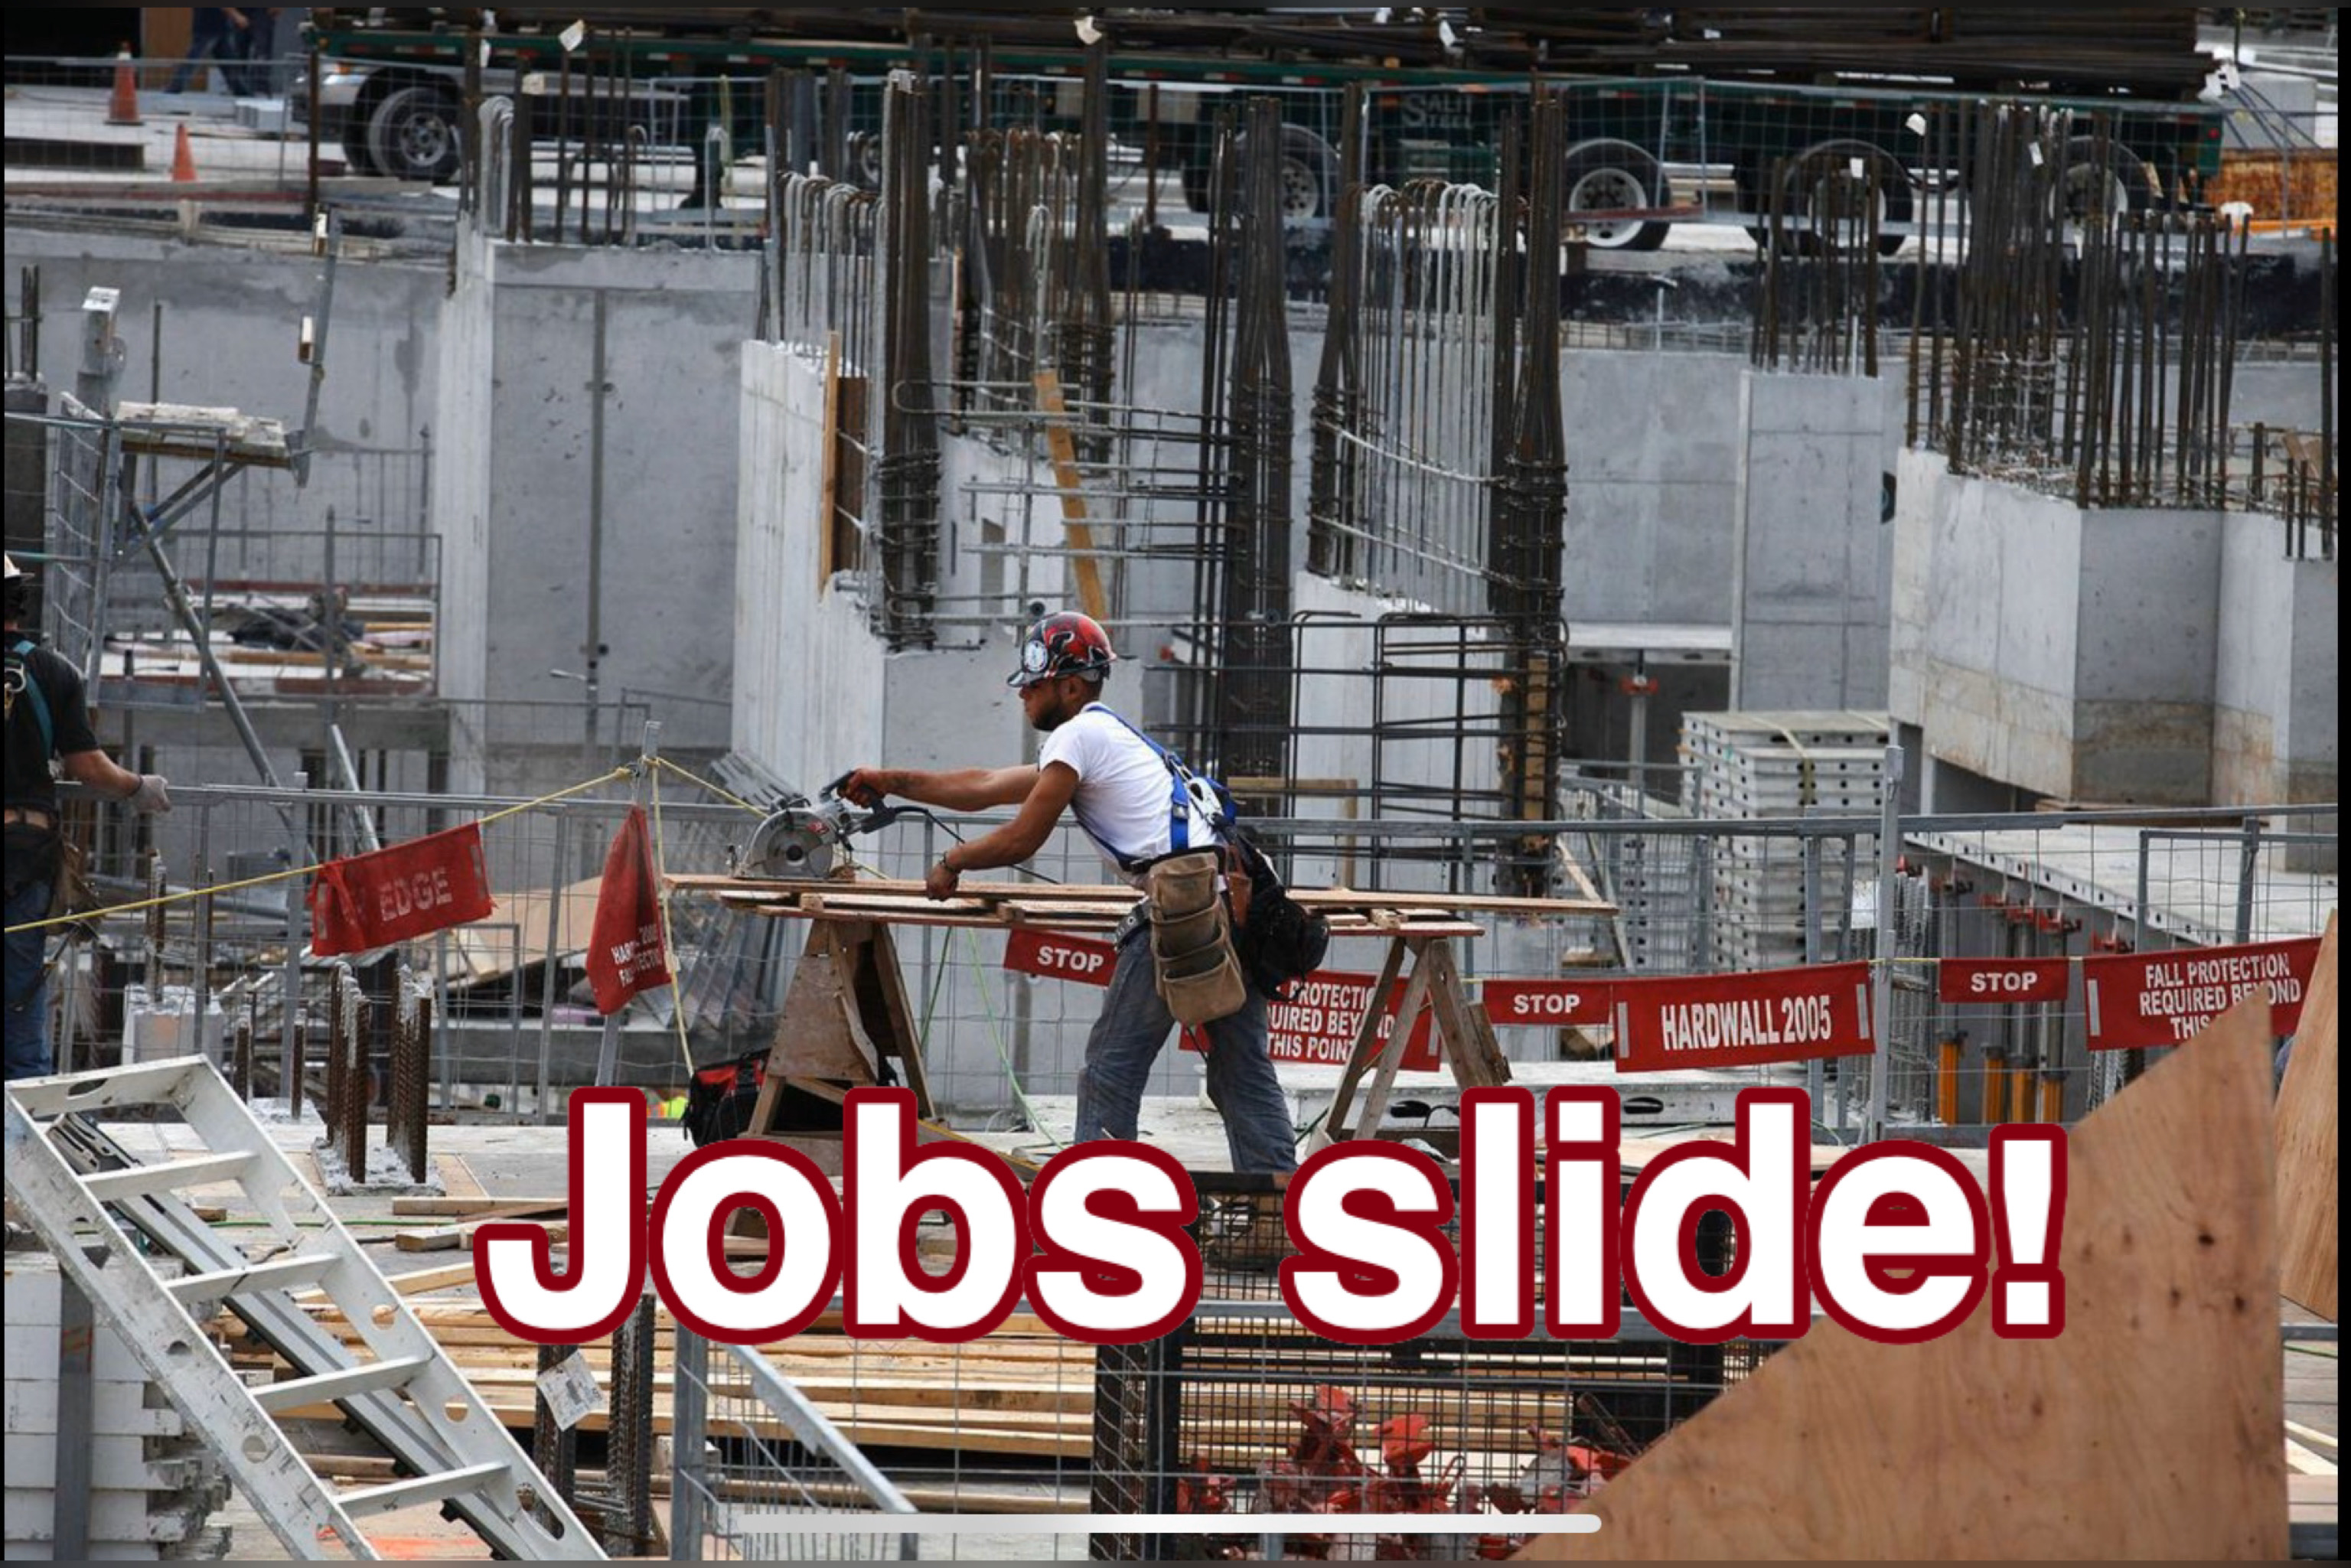 Jobs slide increases worries of economic slowdown